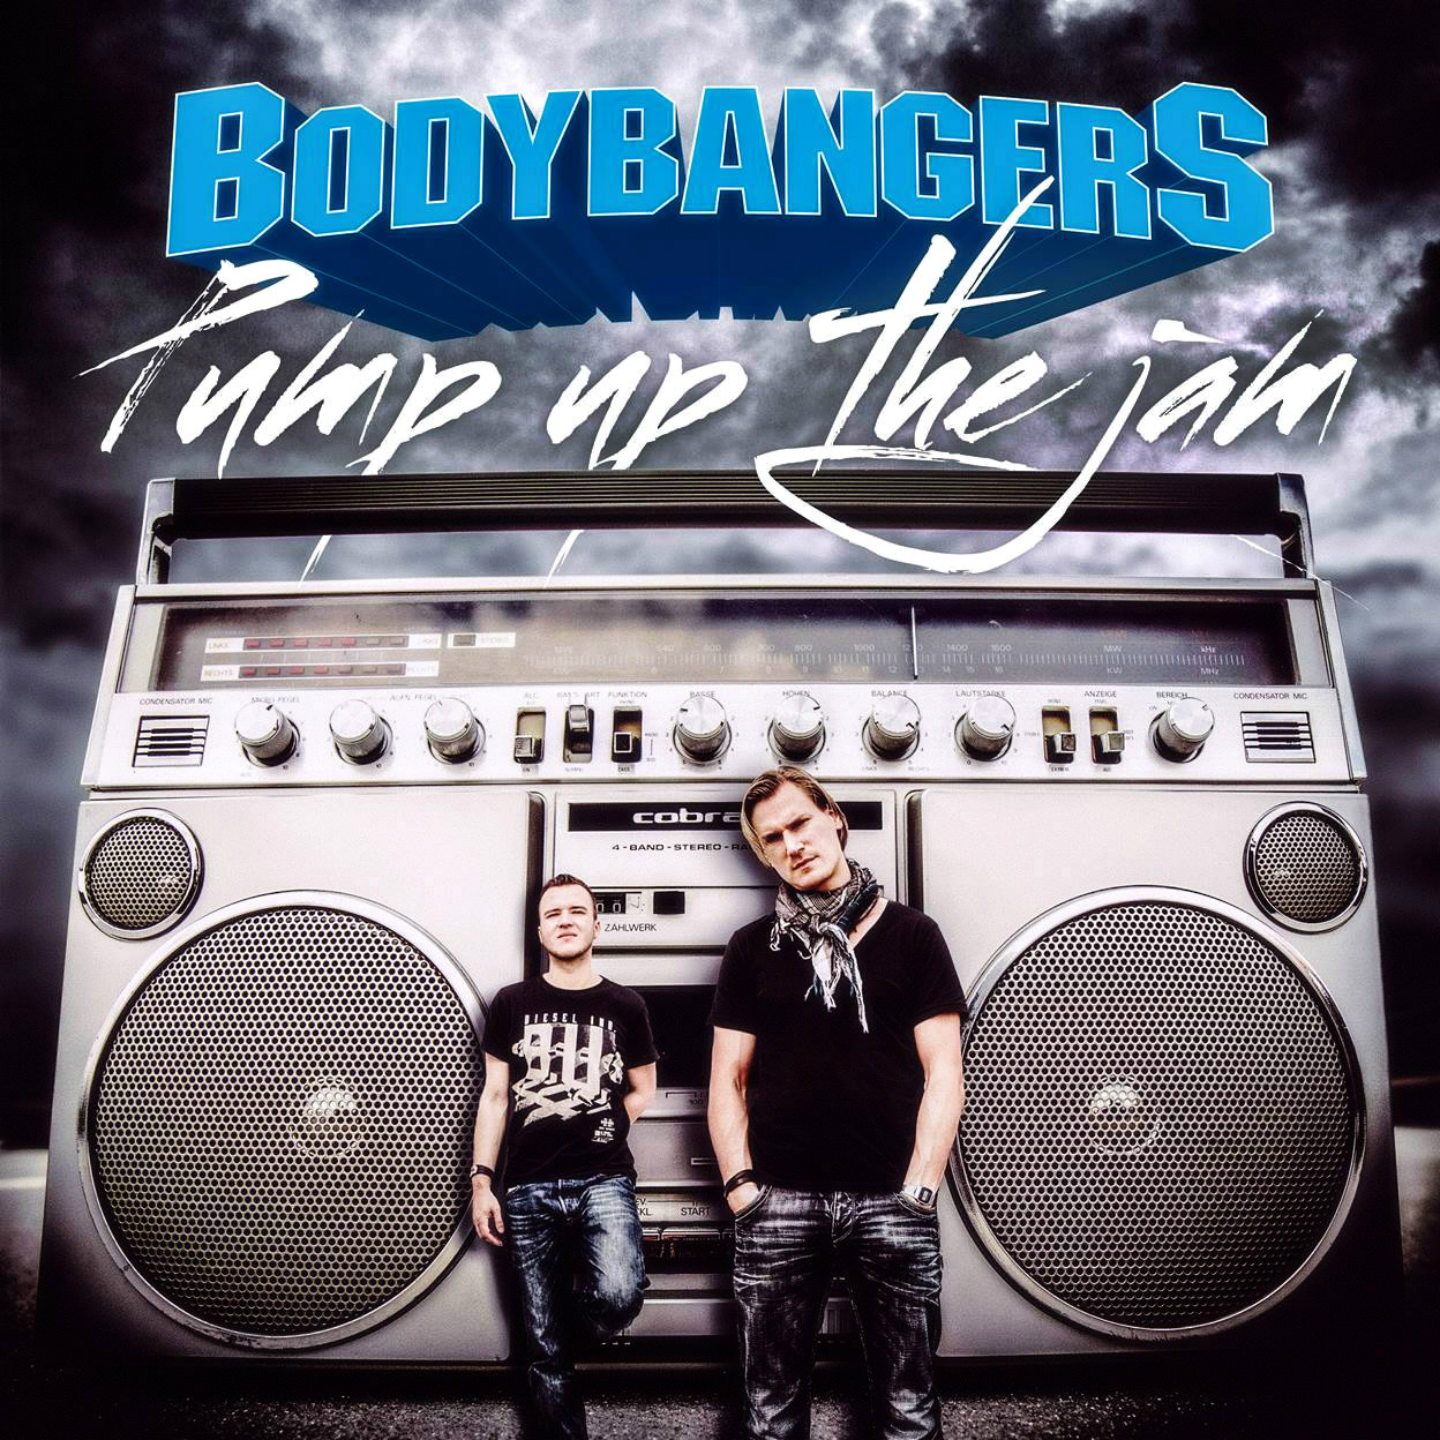 BODYBANGERS - Pump Up The Jam (Kontor/Kontor New Media)